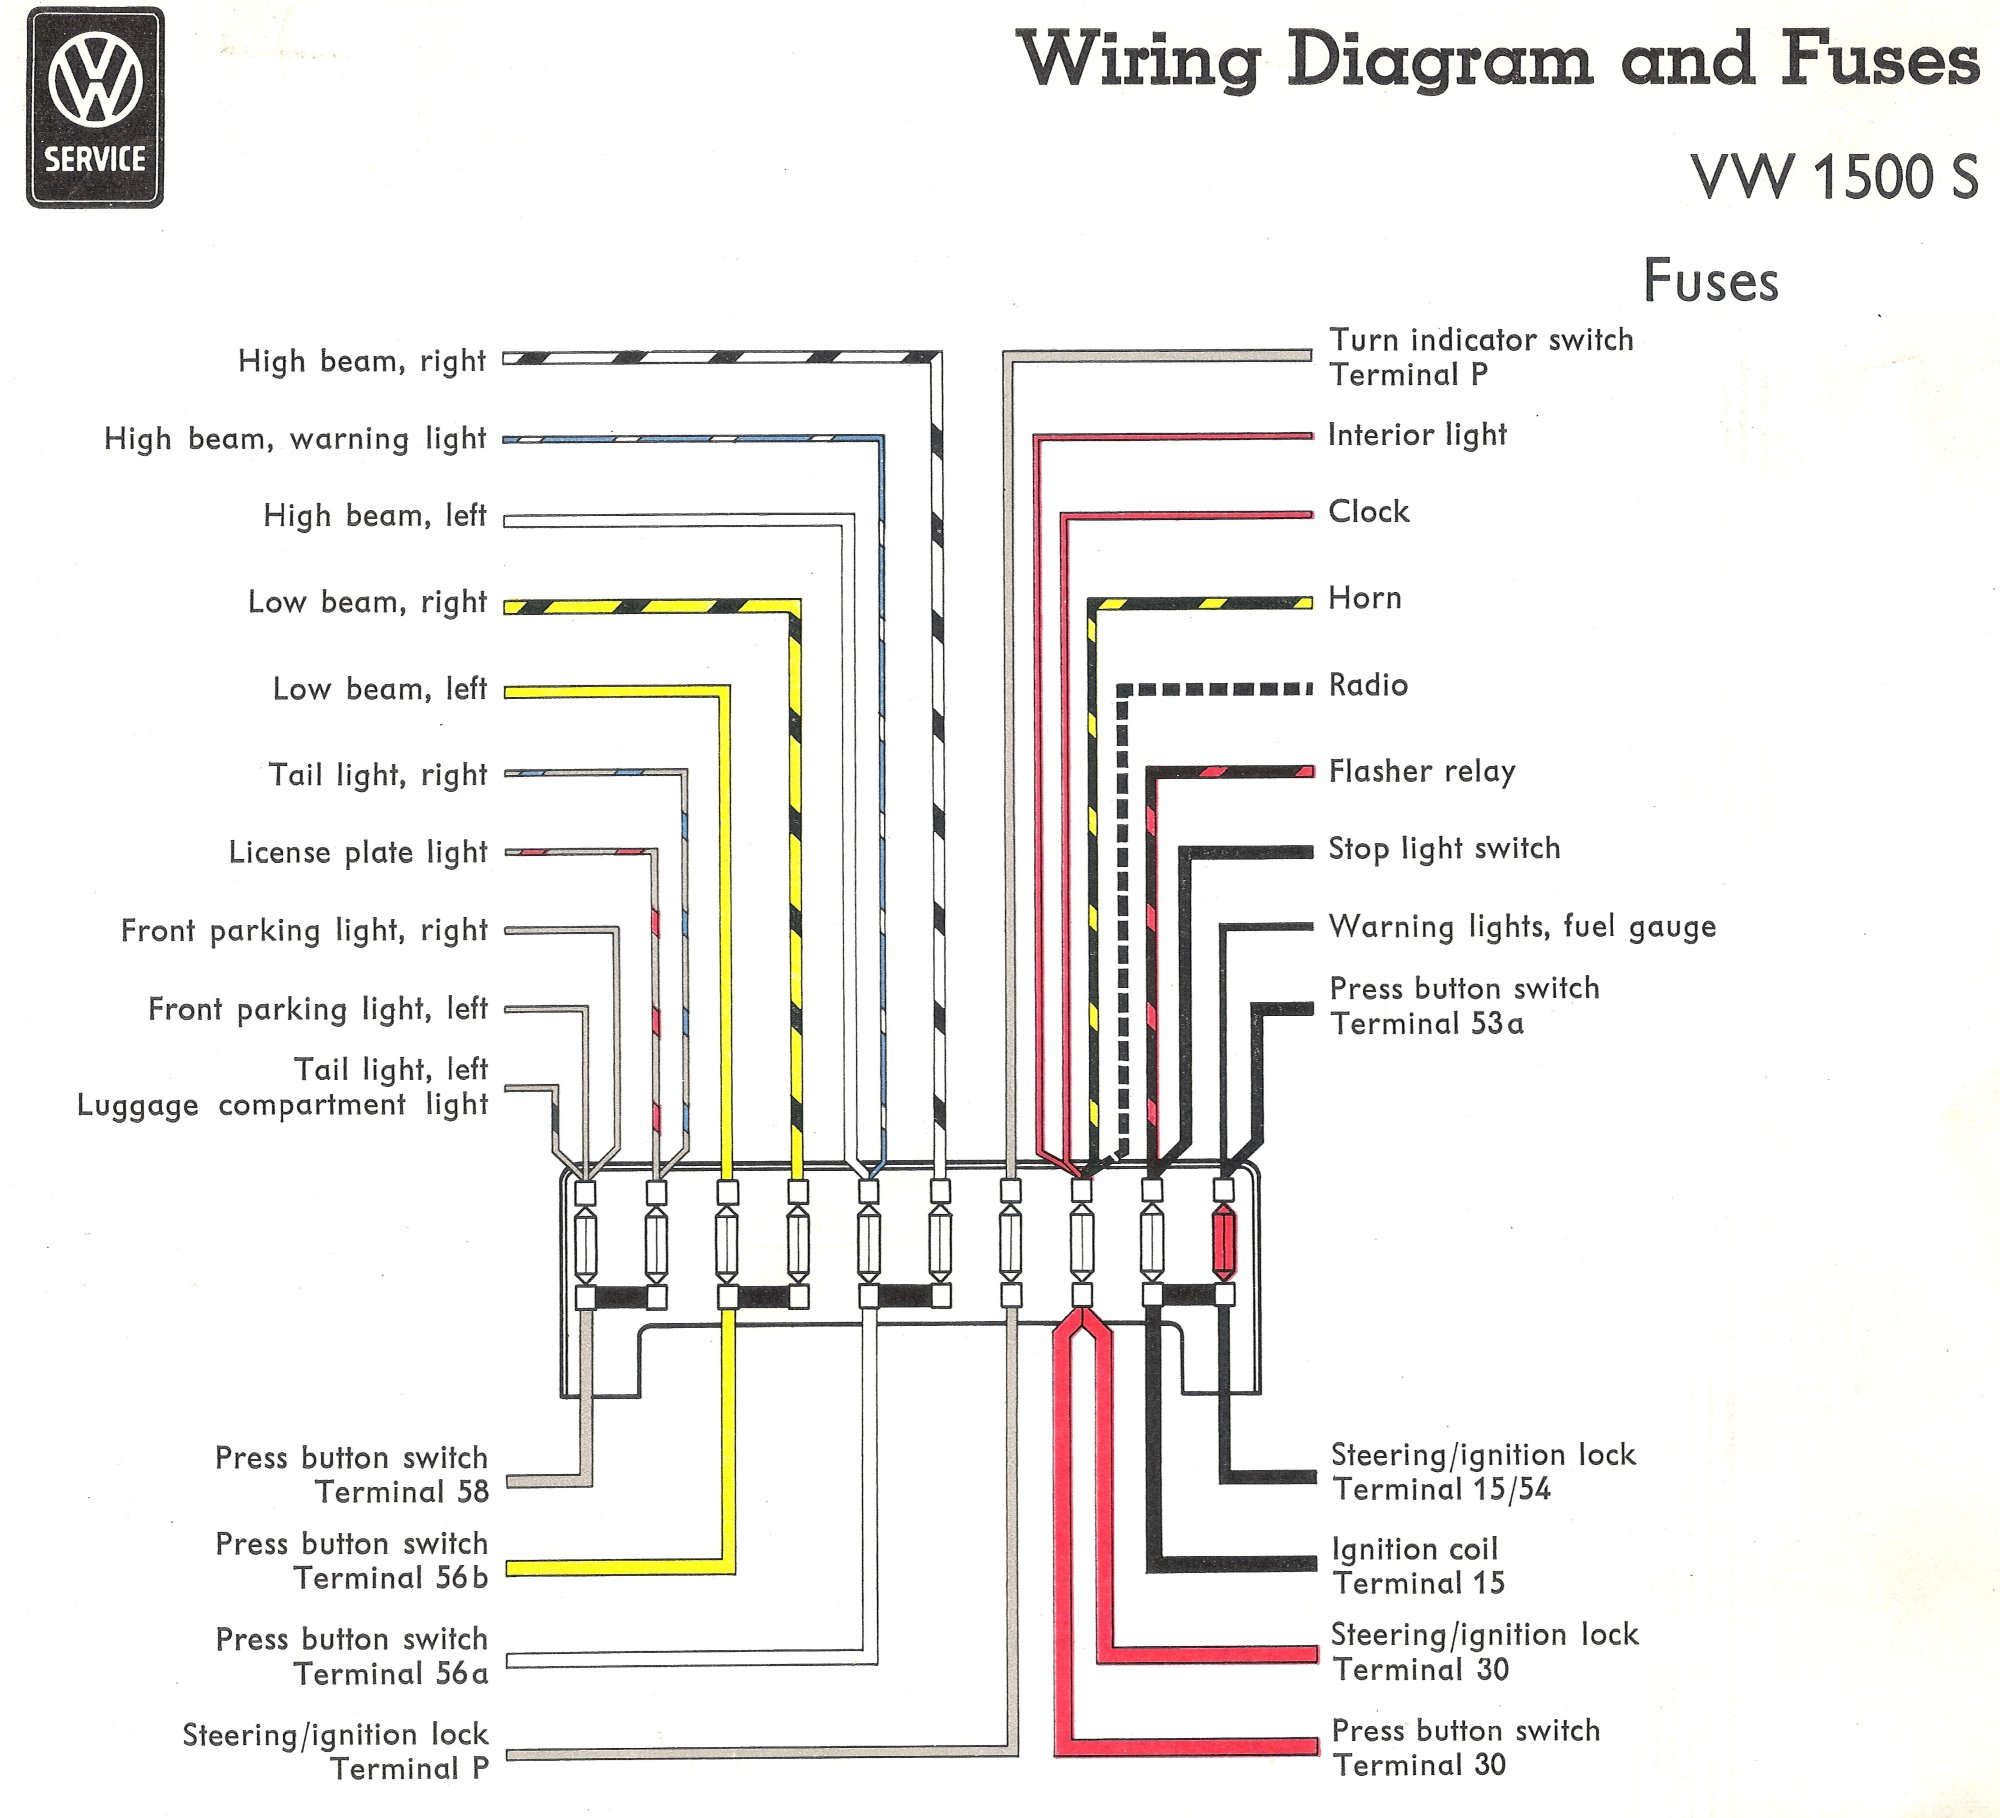 hight resolution of 1974 vw beetle fuse box wiring diagram detailed 2013 nissan sentra fuse box diagram 1974 beetle fuse box diagram